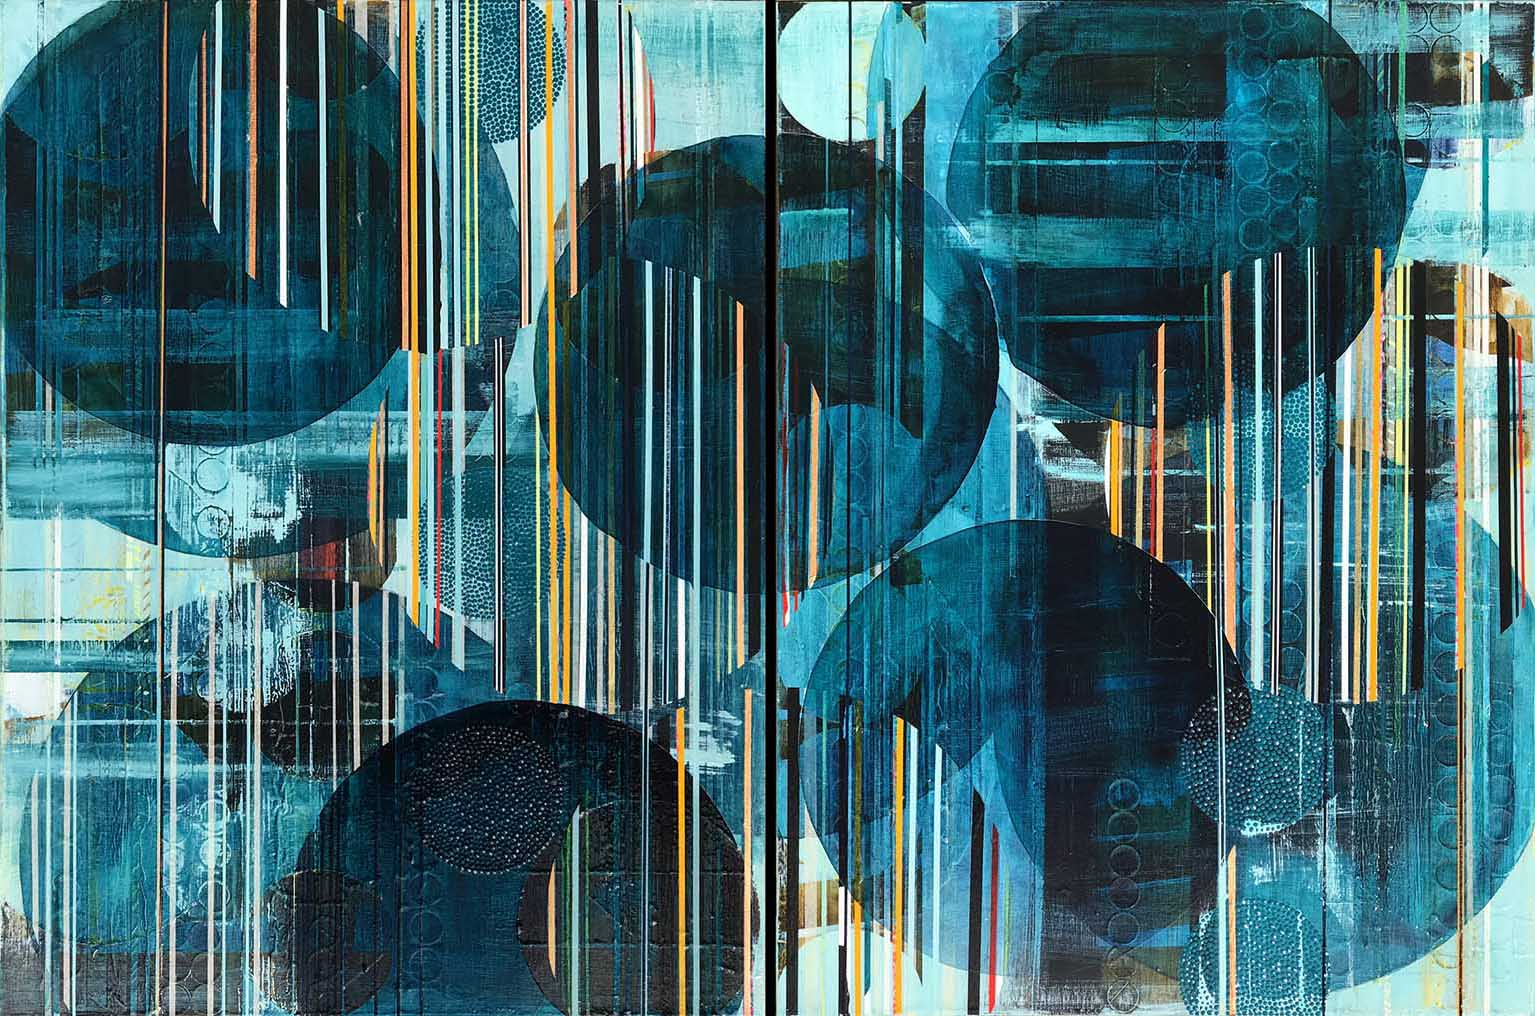 """You blush like an ocean in love, wild with blueness / 2017 / Diptych, 40""""h x 60""""w / Title from: """"Salt"""", poems by Nayyirah Waheed / Private collection"""